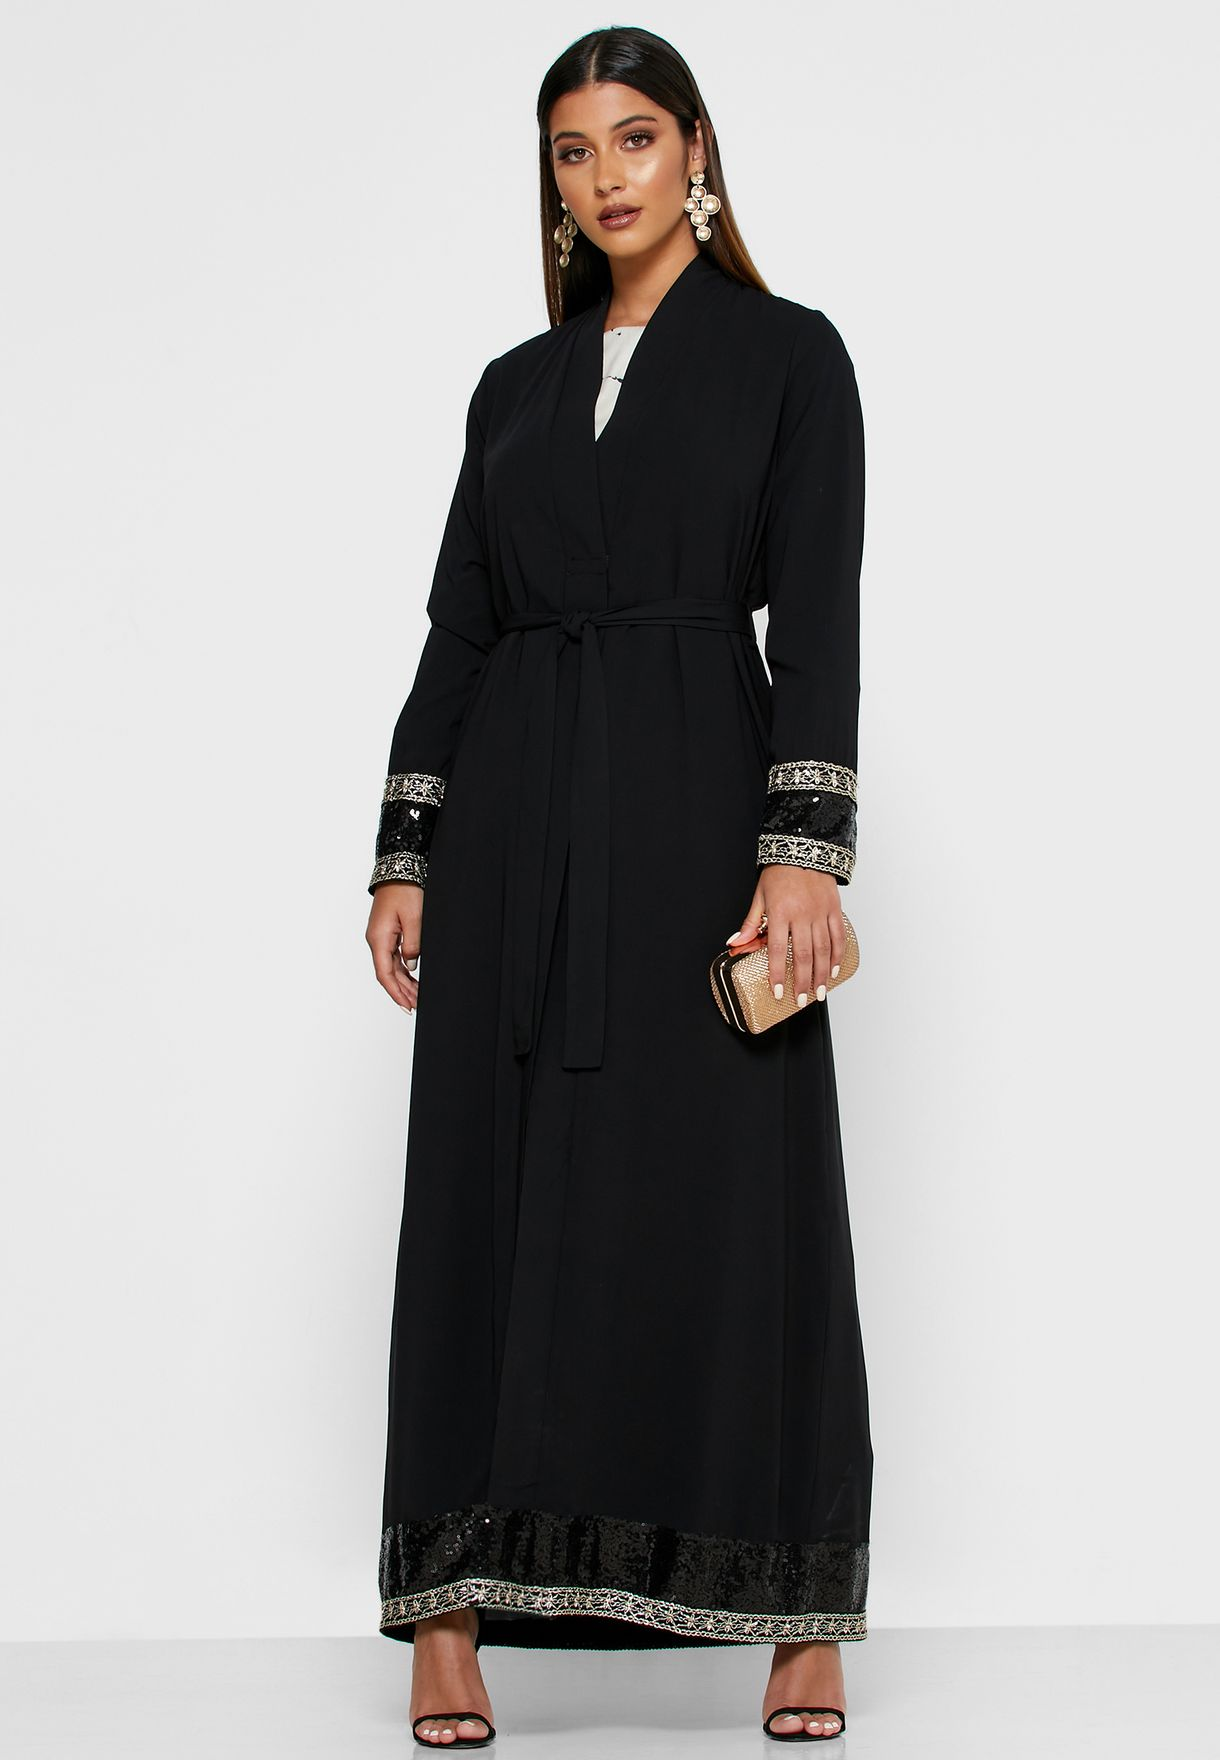 Embroidered Sequin Trim Self Tie Abaya